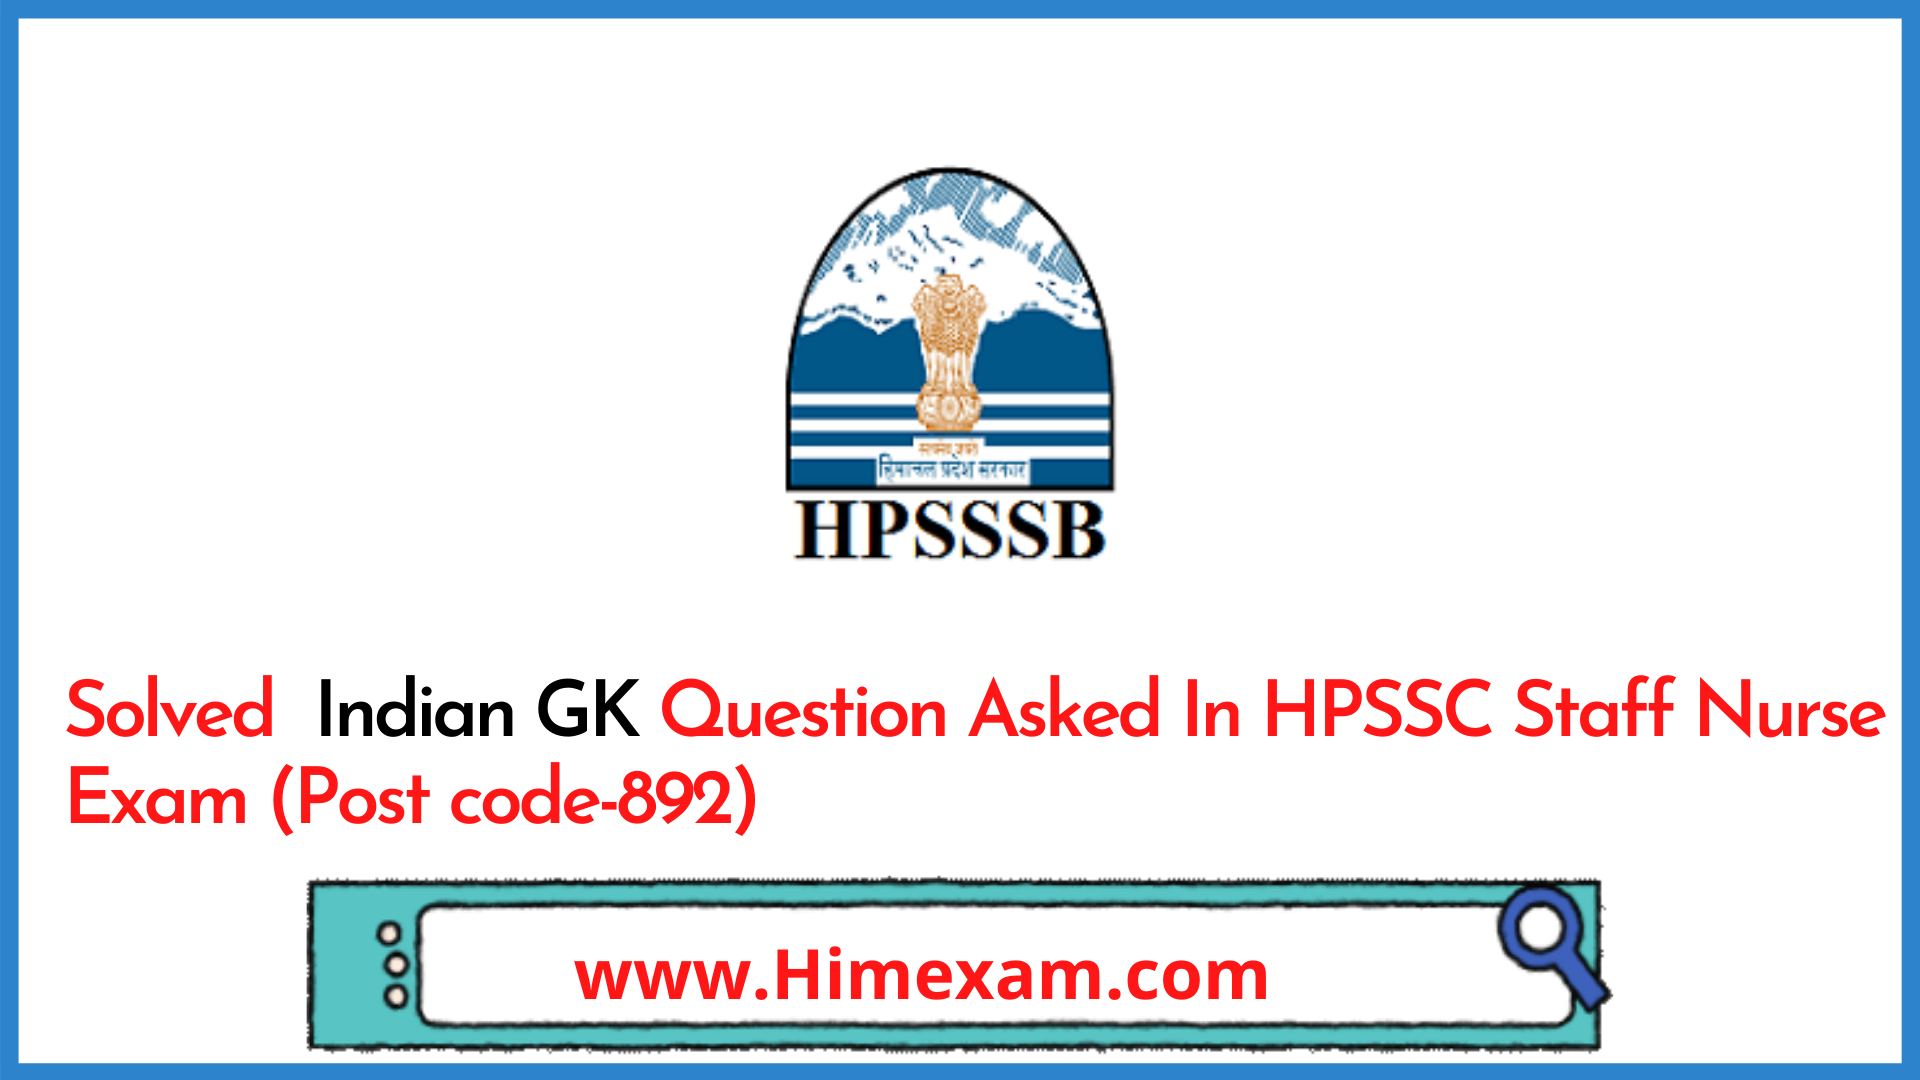 Solved indian GK Question Asked In HPSSC Staff Nurse Exam (Post code-892)